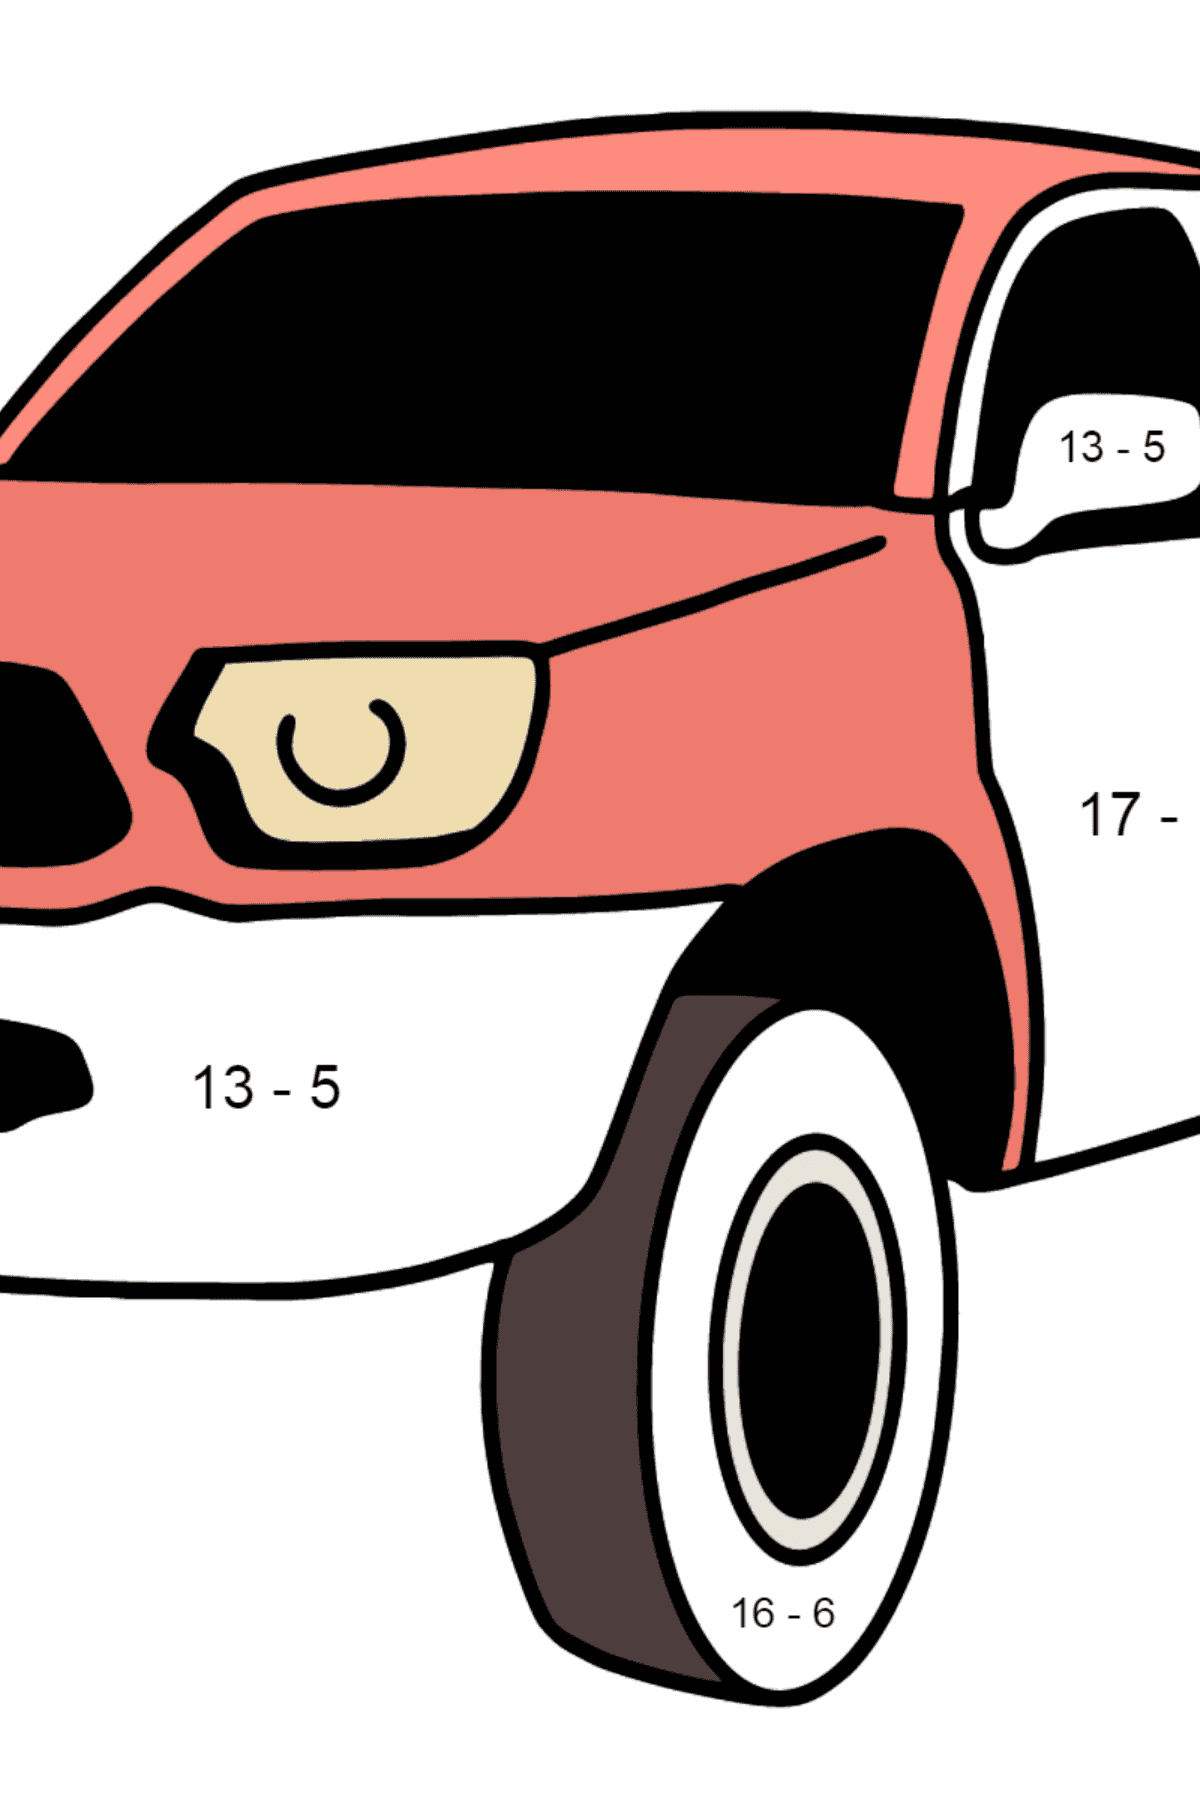 Toyota Tacoma Pickup Truck coloring page - Math Coloring - Subtraction for Kids